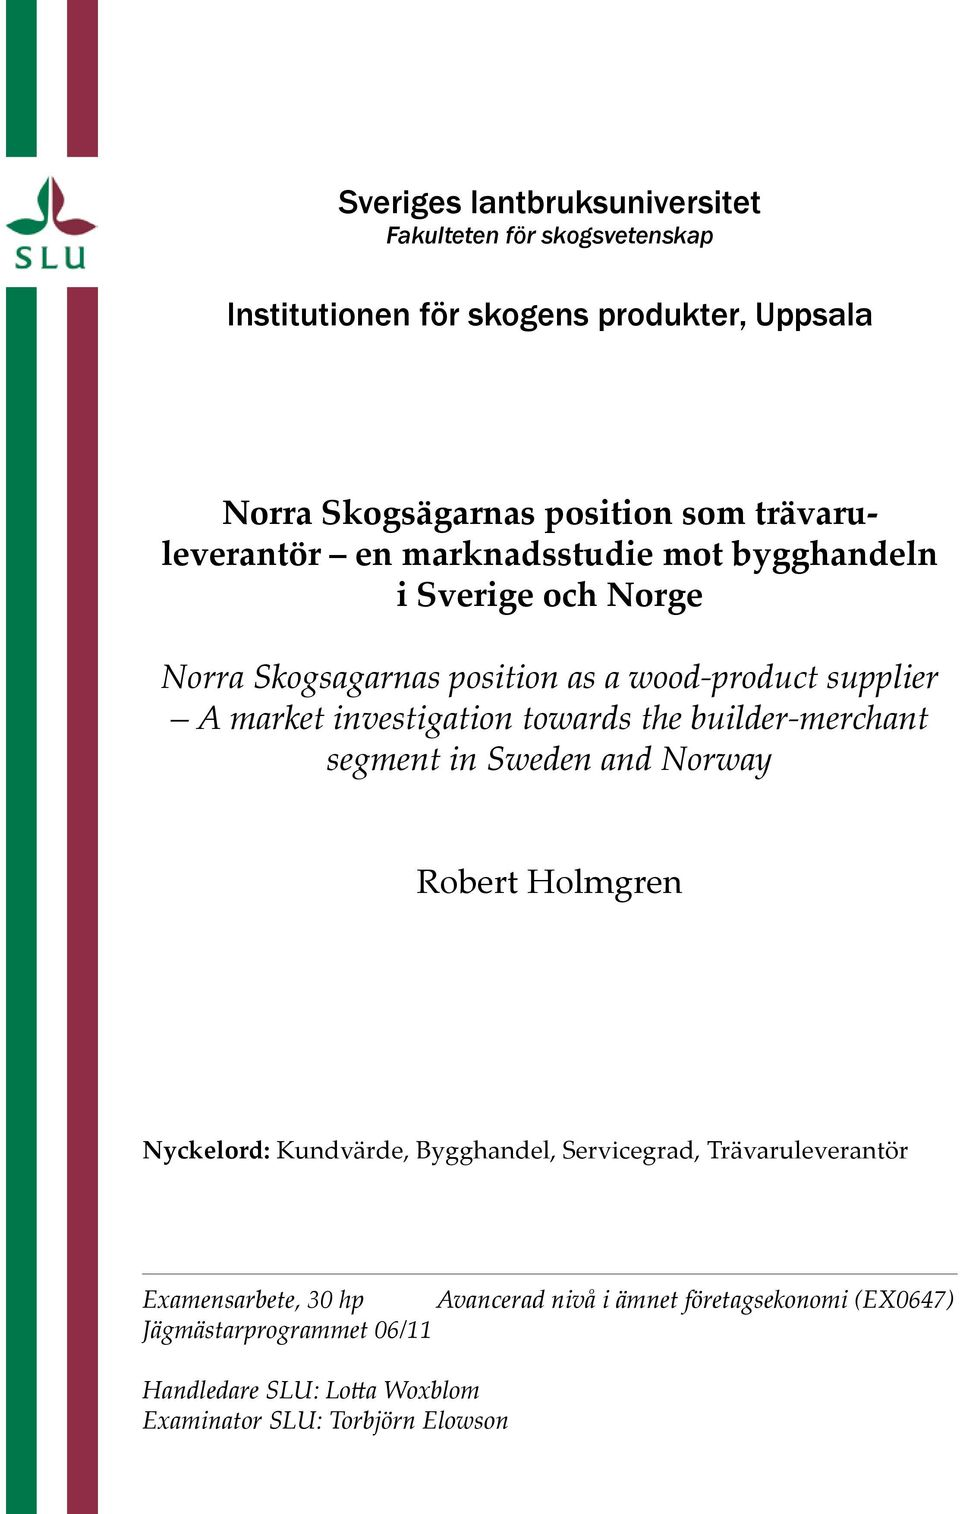 investigation towards the builder-merchant segment in Sweden and Norway Robert Holmgren Nyckelord: Kundvärde, Bygghandel, Servicegrad,